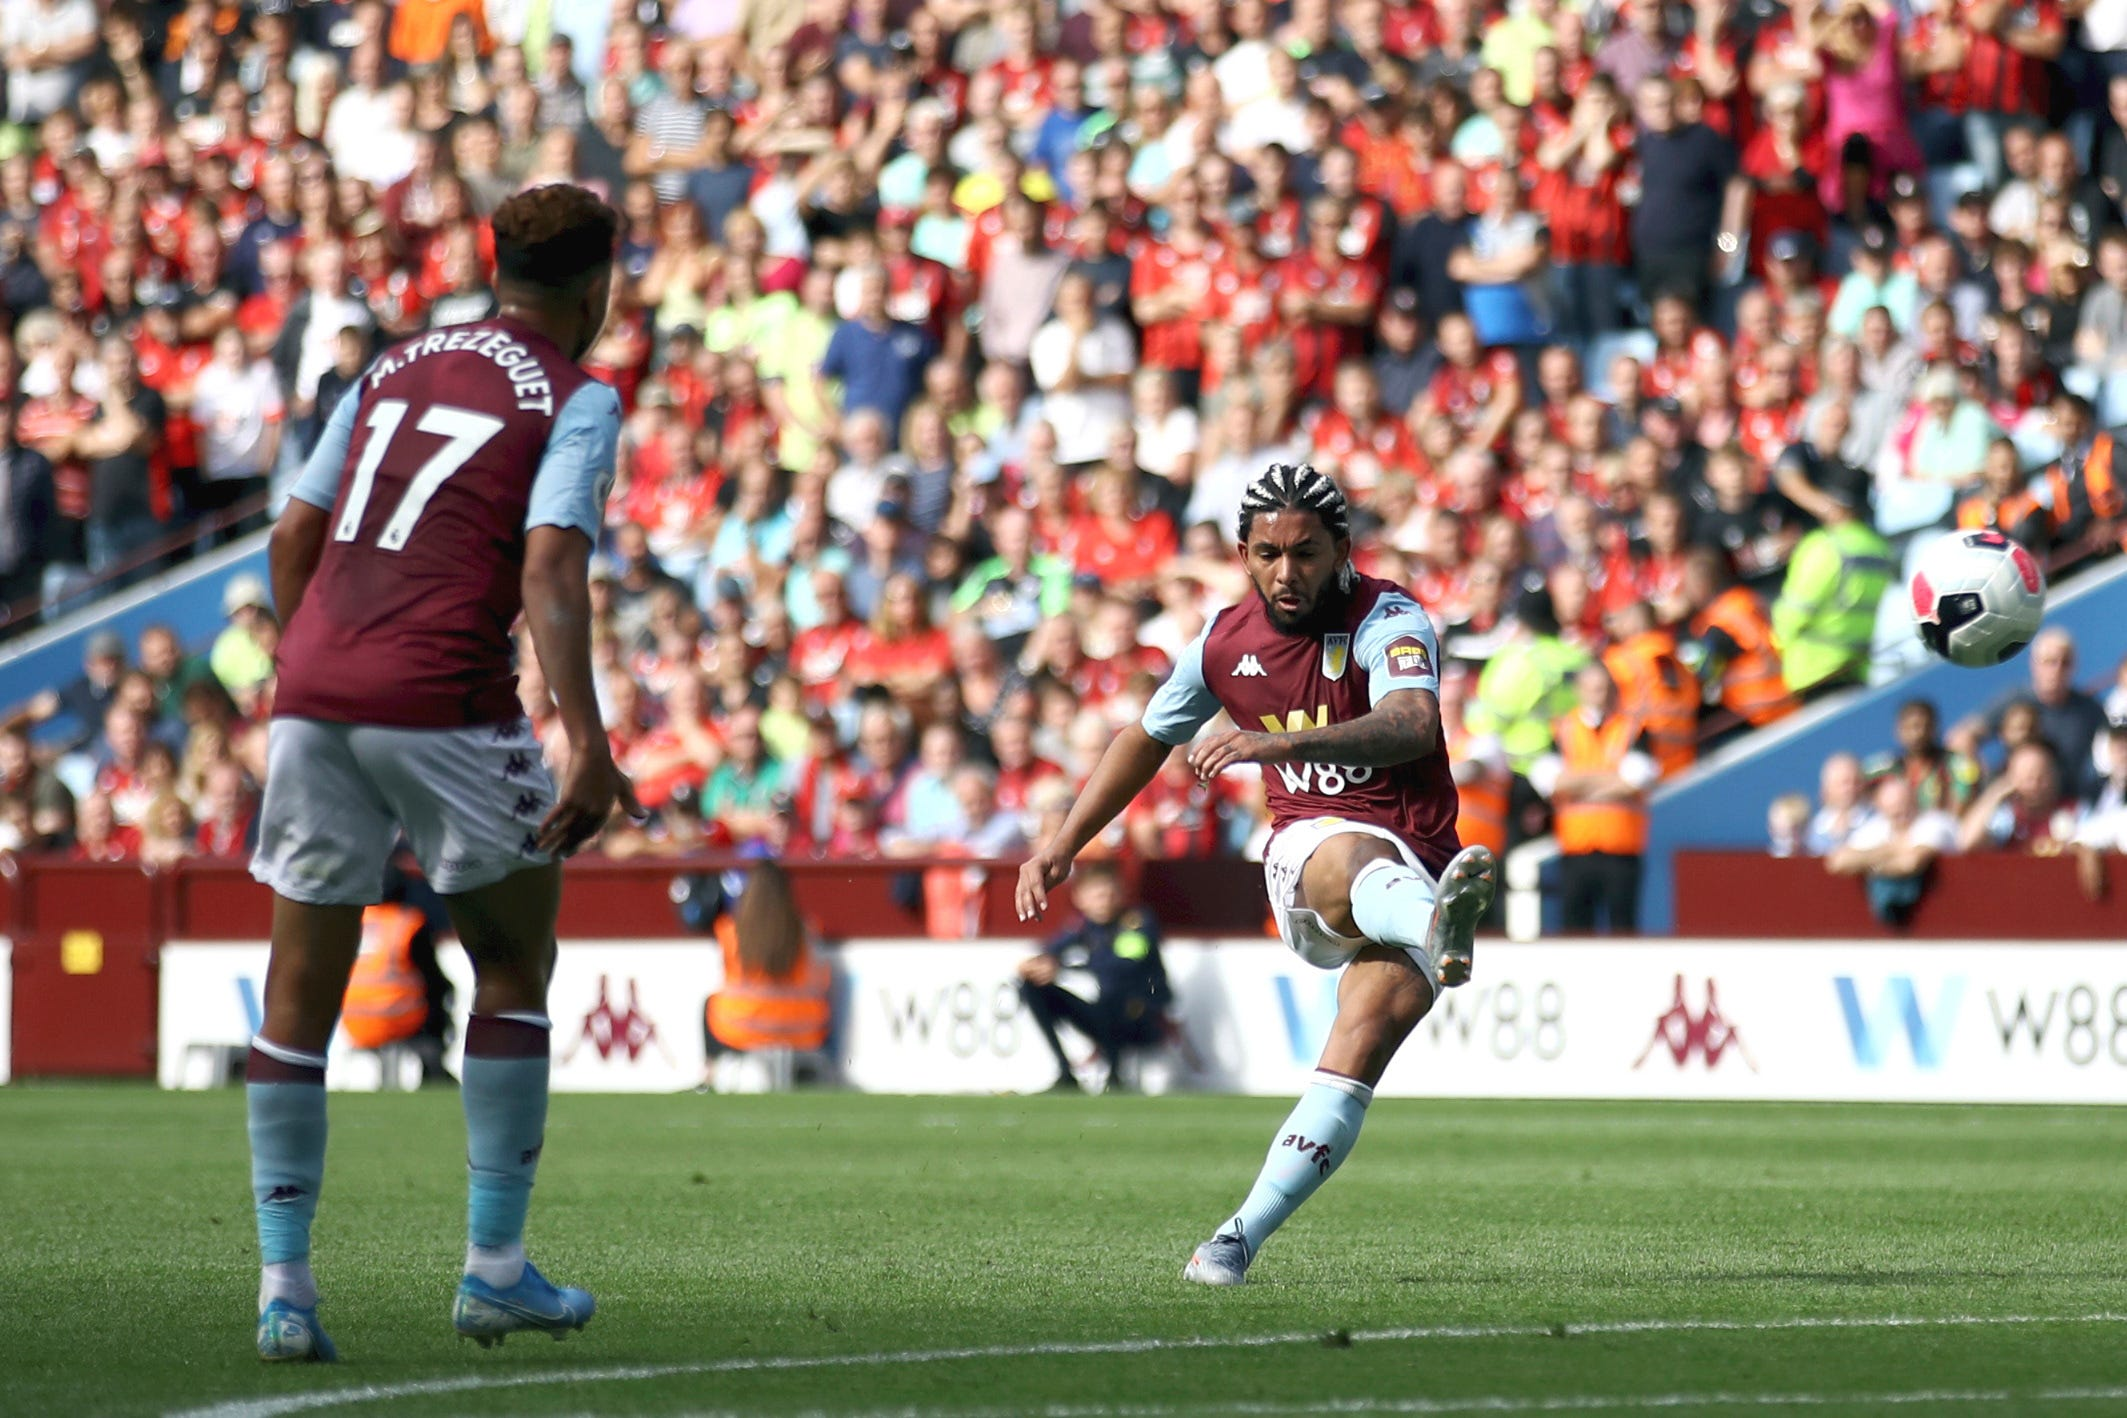 Bournemouth spoil first Villa EPL home match in 3 years